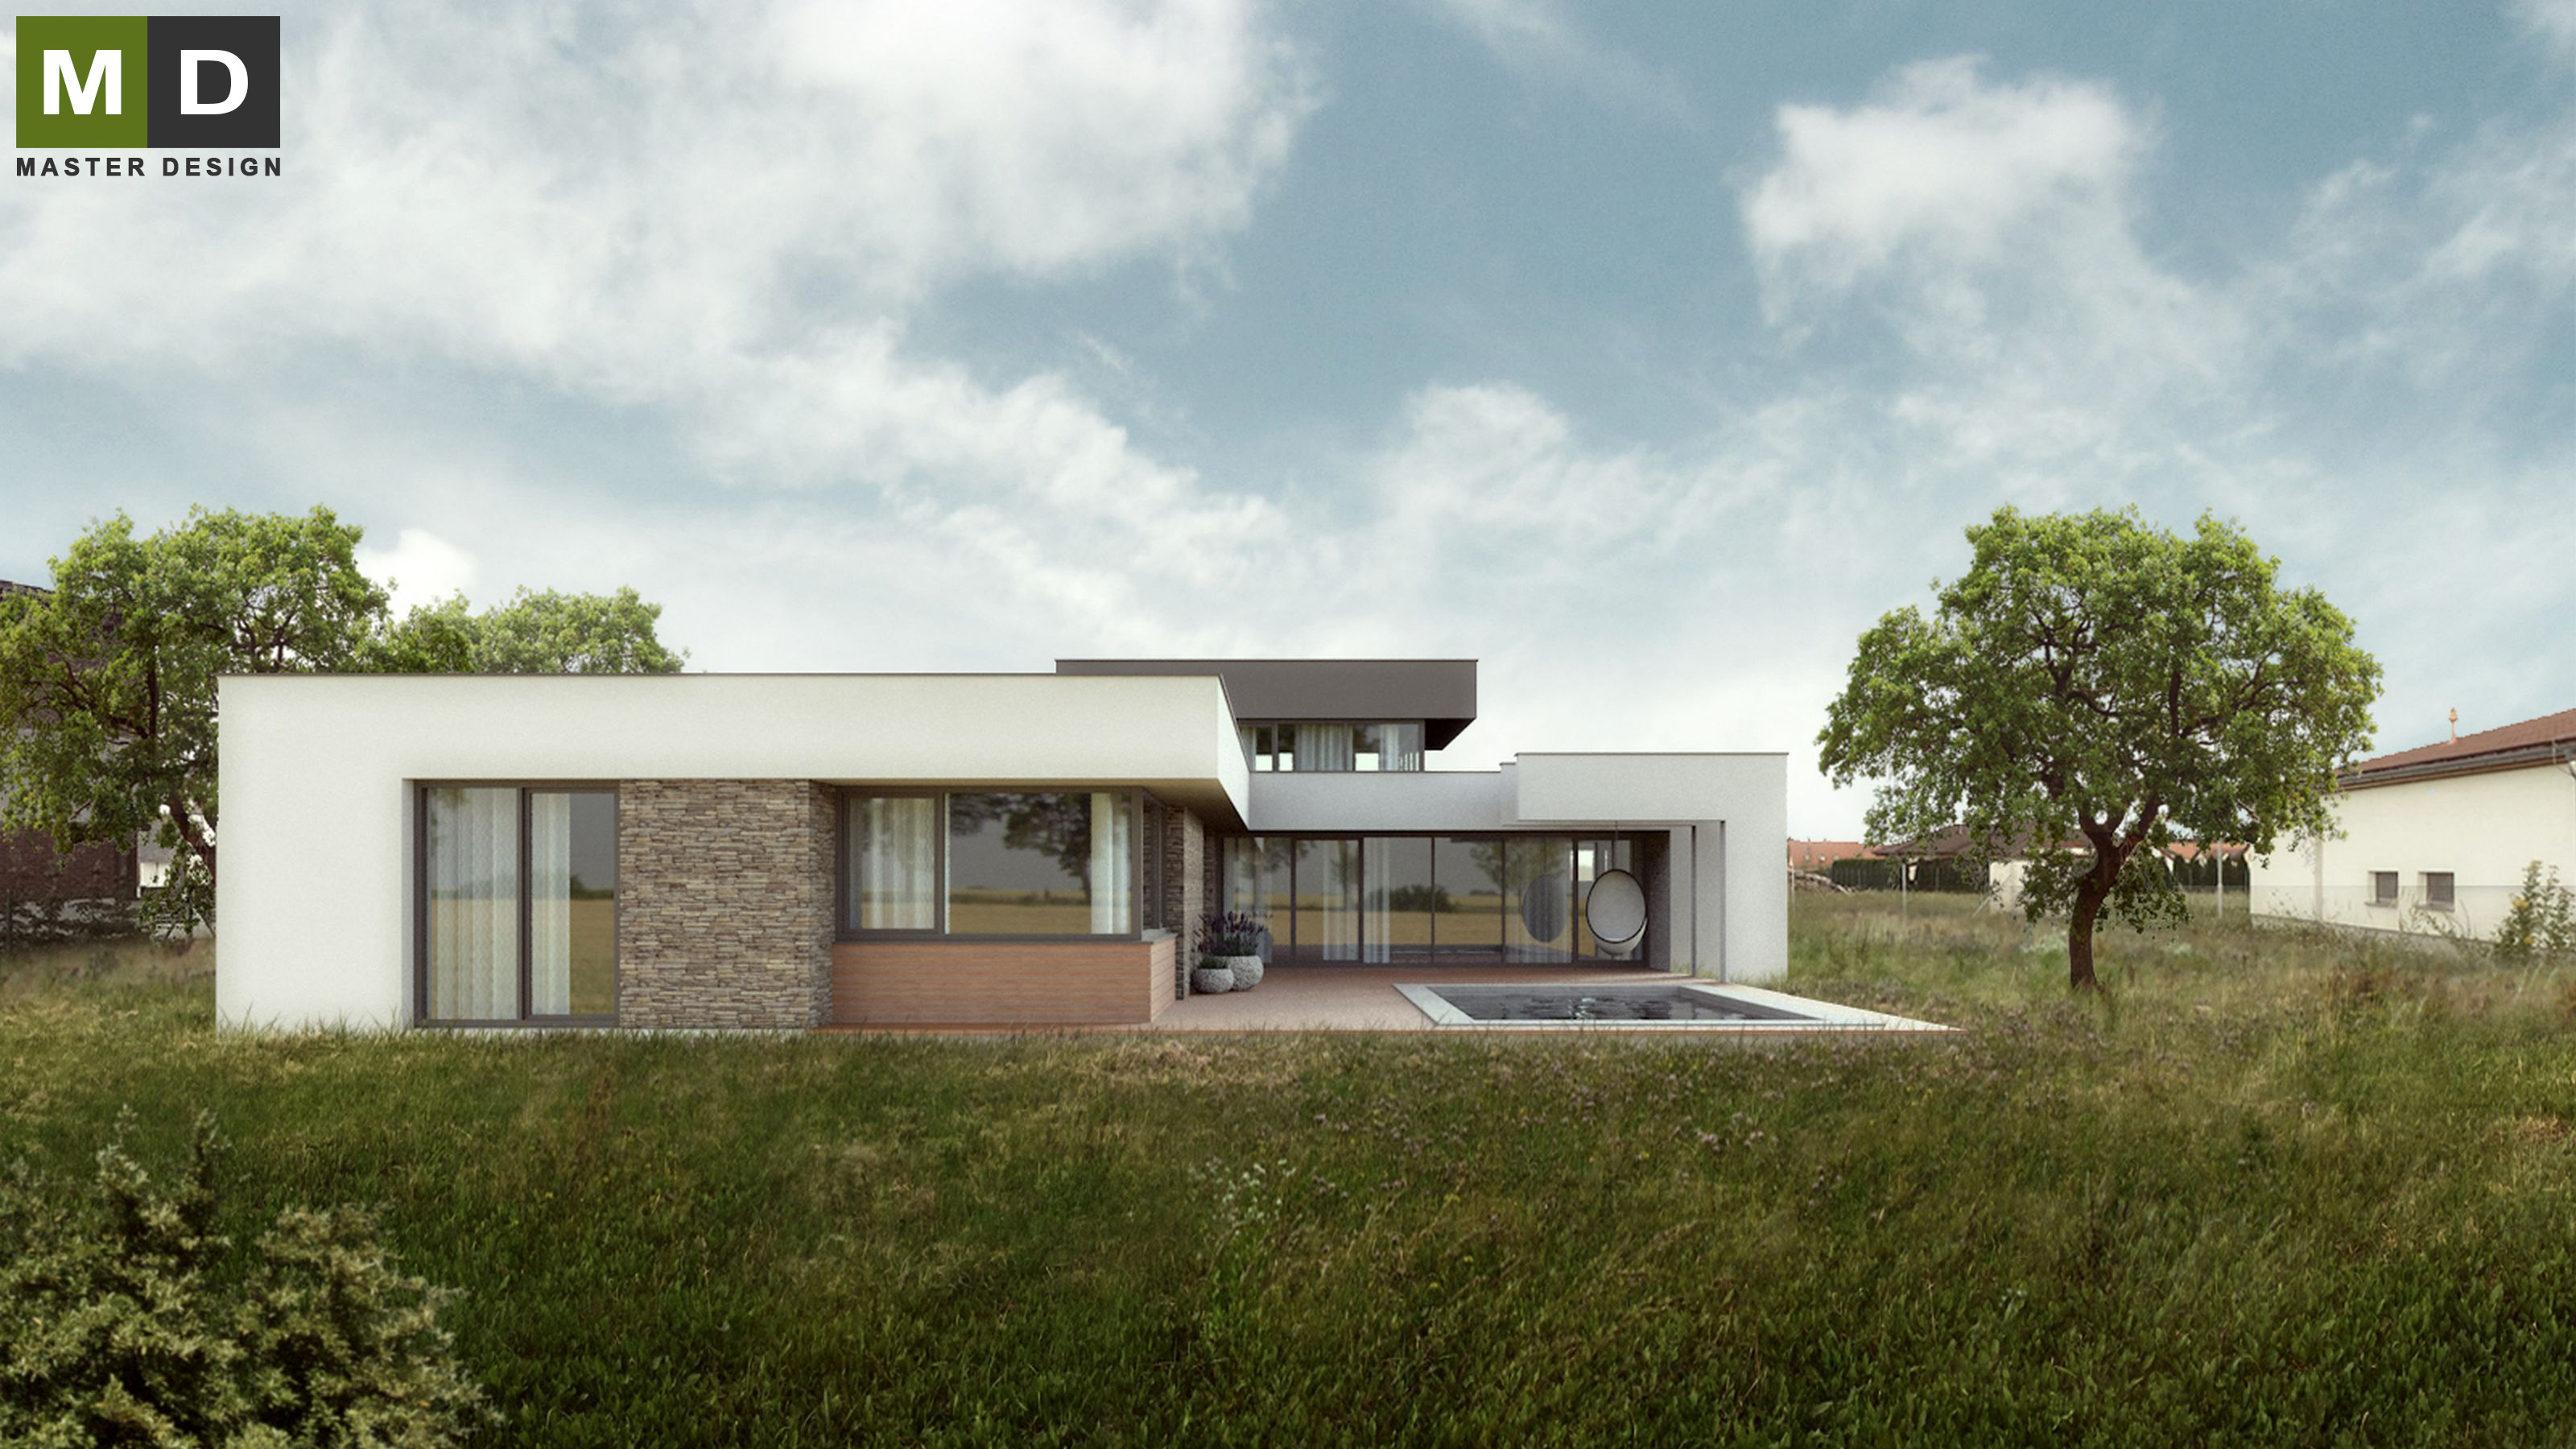 Luxury low energy bungalow with a flat roof - Osnice | MASTER DESIGN ...